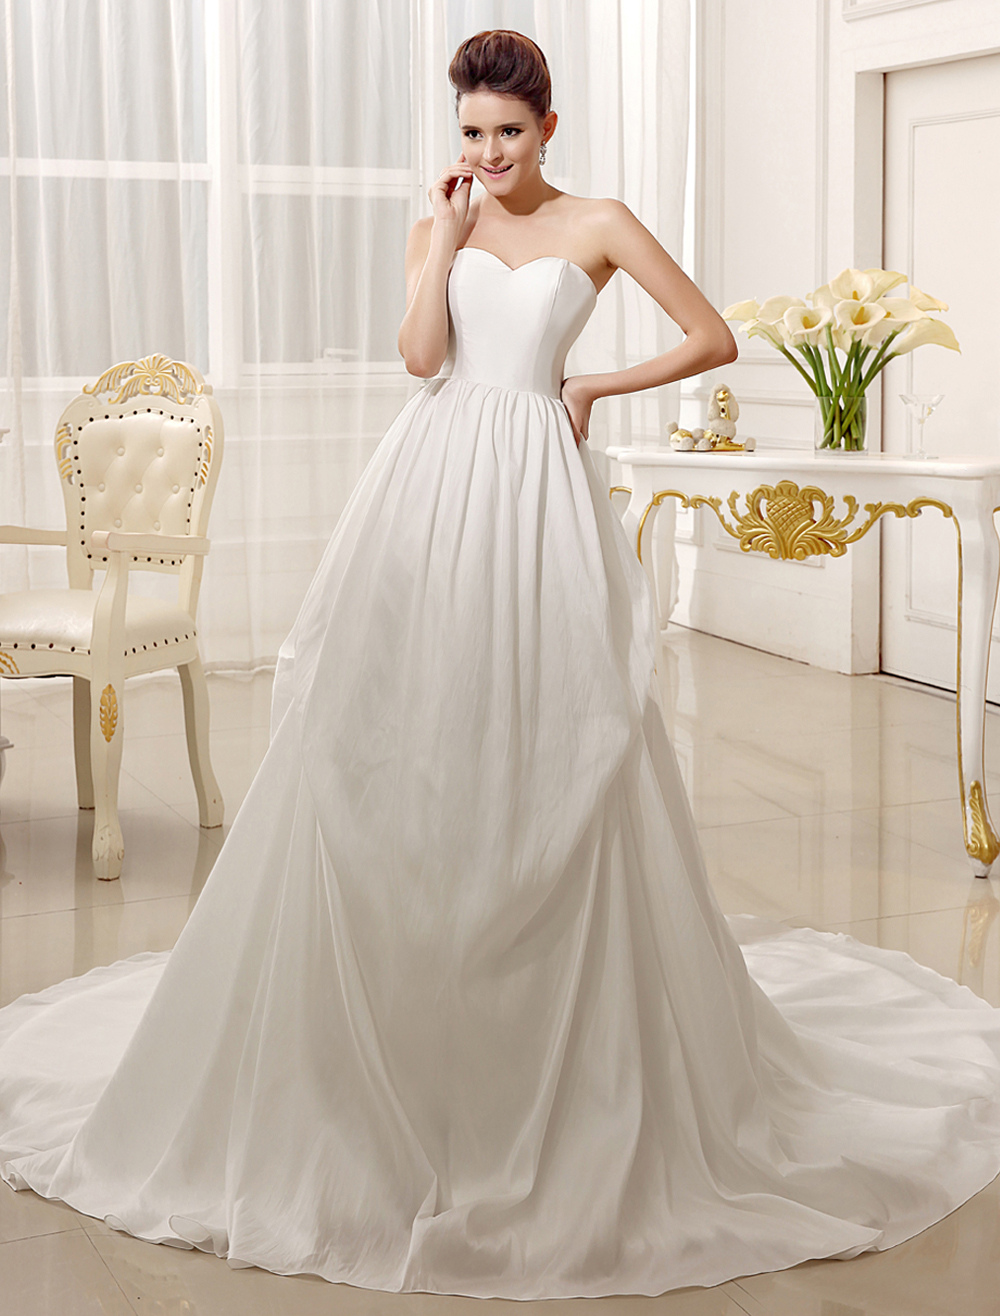 A-line Sweetheart Neck Strapless Court Train Ivory Bridal Wedding Gown